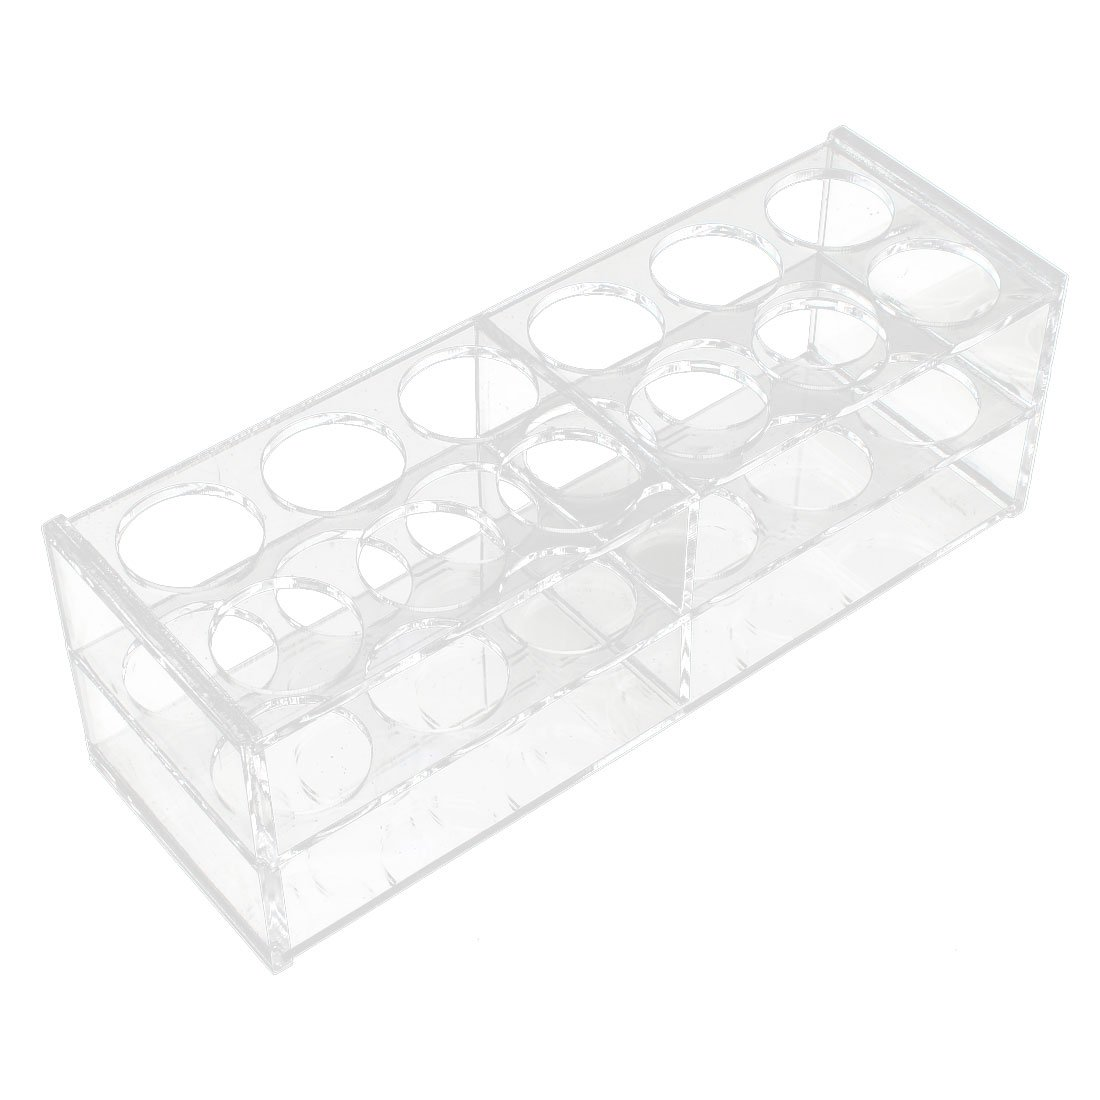 uxcell Lab Clear Plastic 12 Sockets 5ml Centrifuge Tube Holder Stand Rack